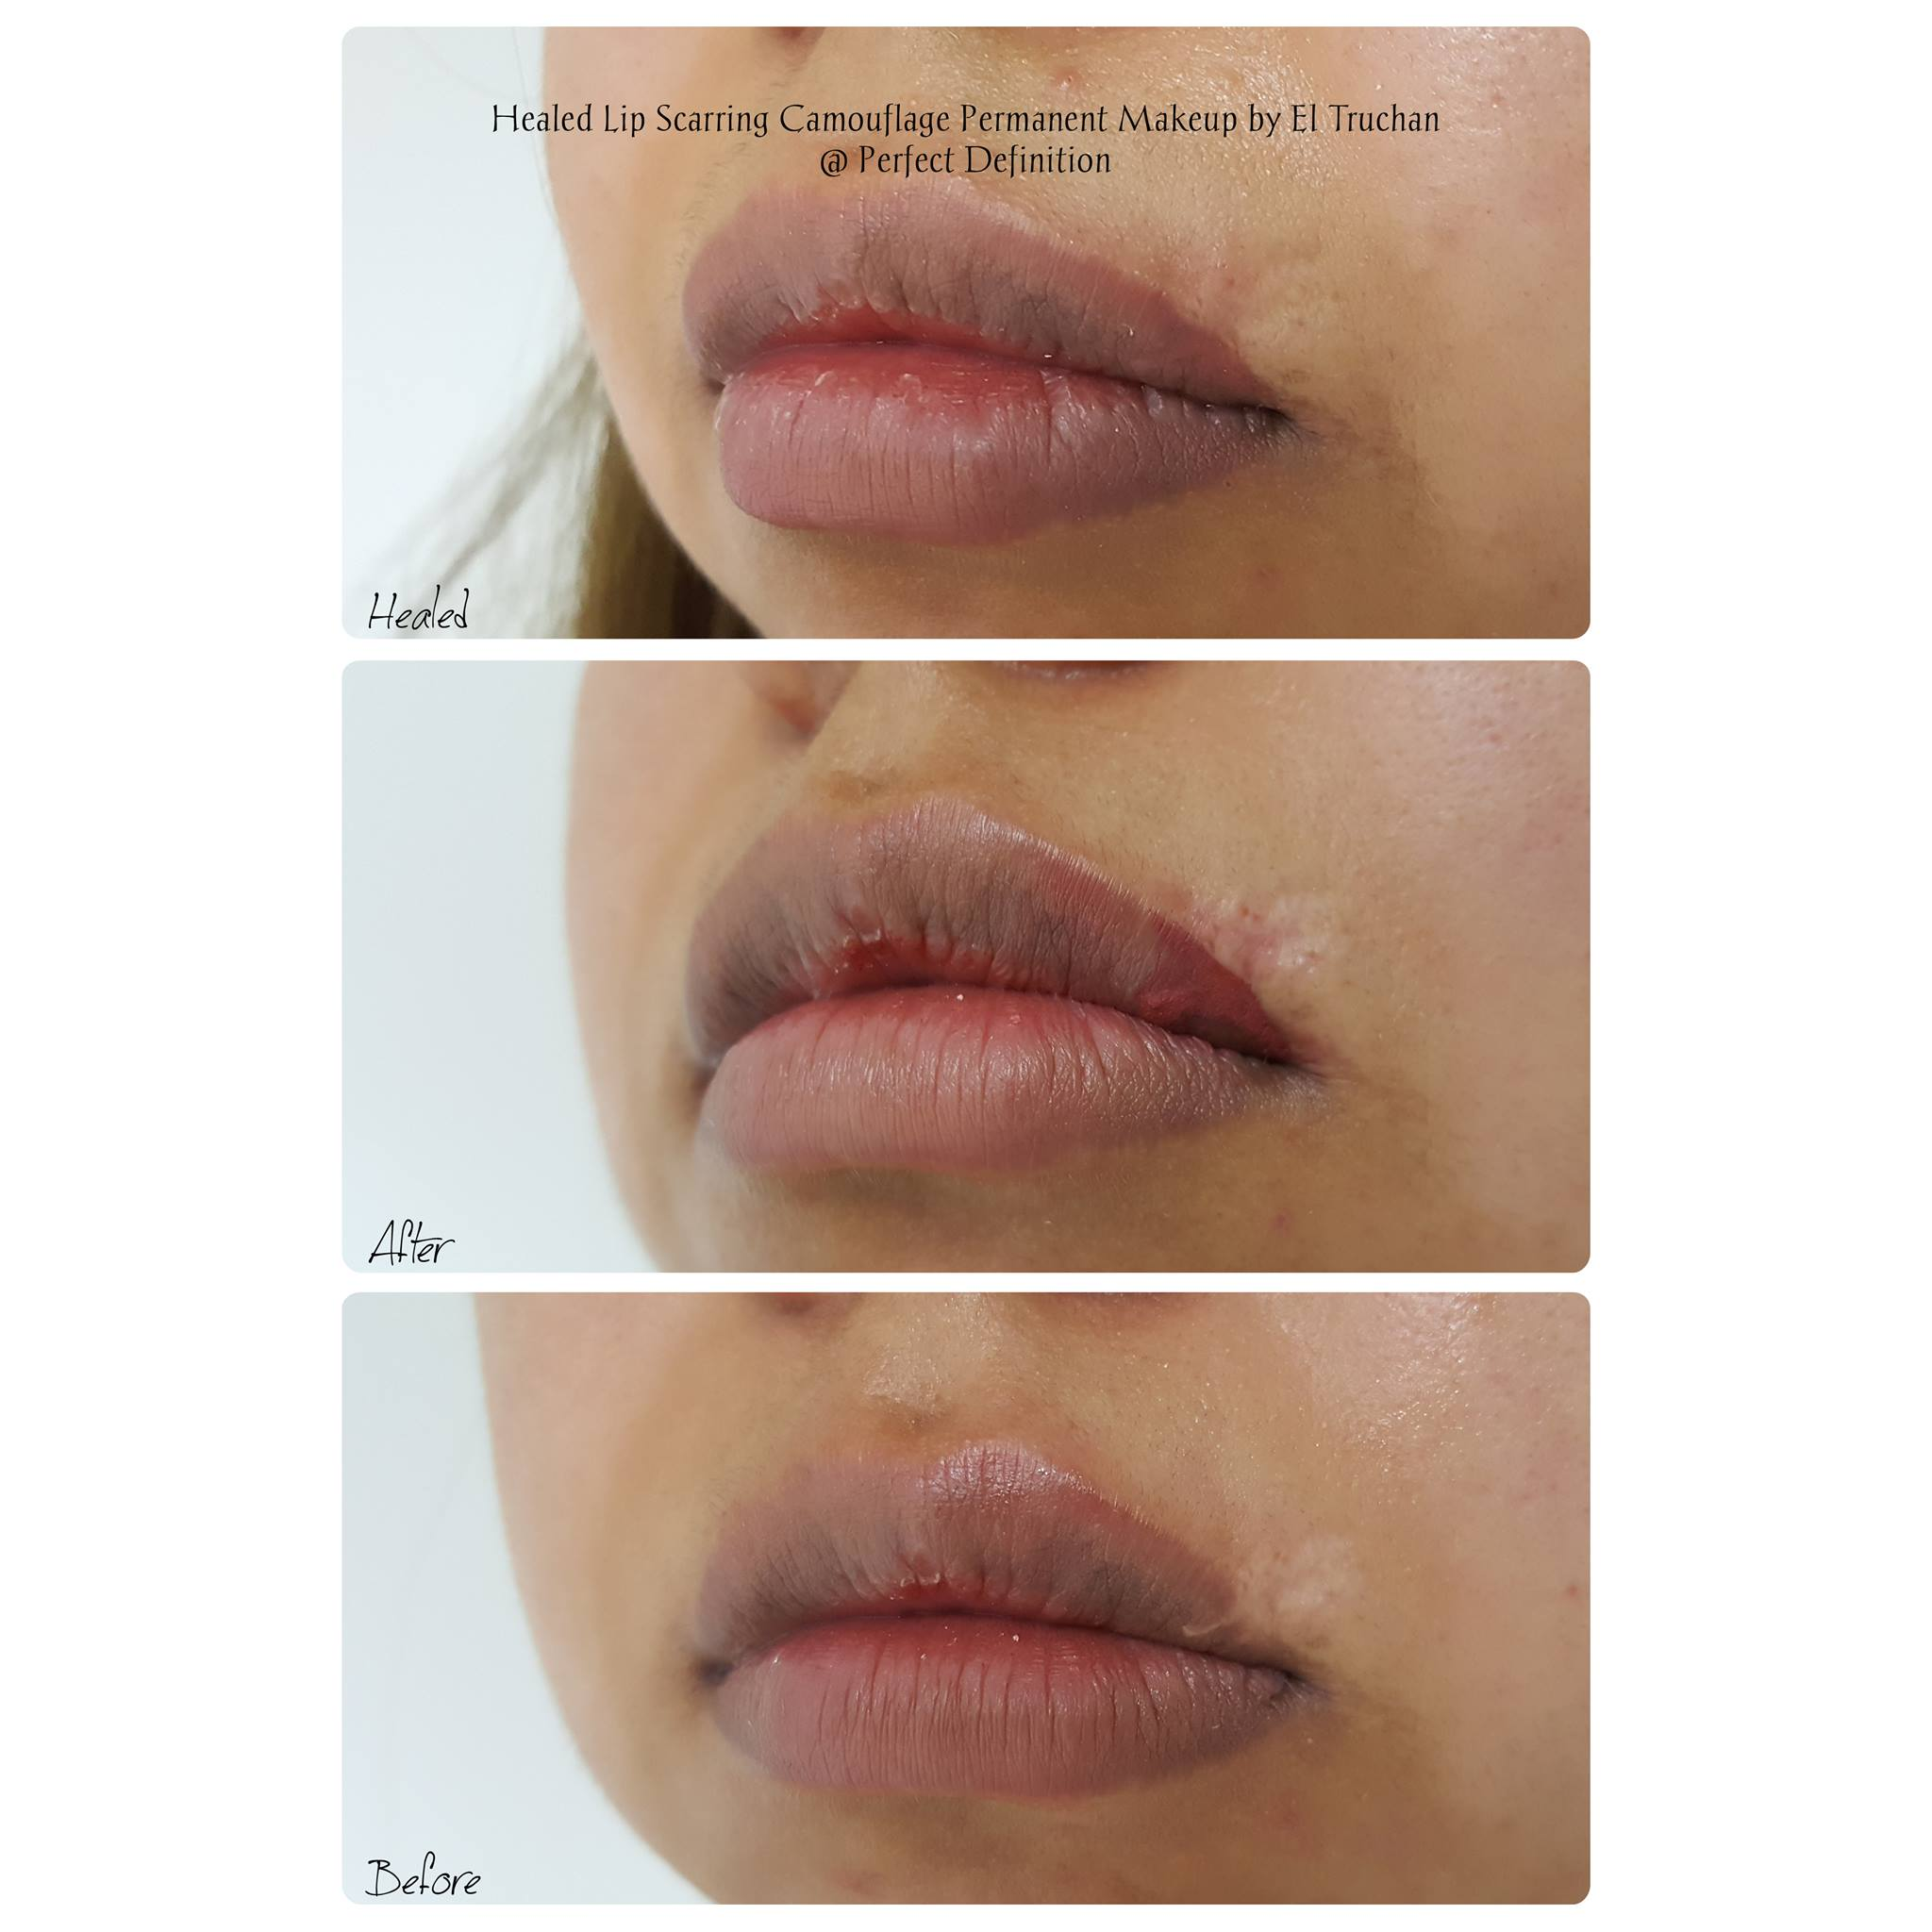 Healed Lip Scarring Camouflage Permanent